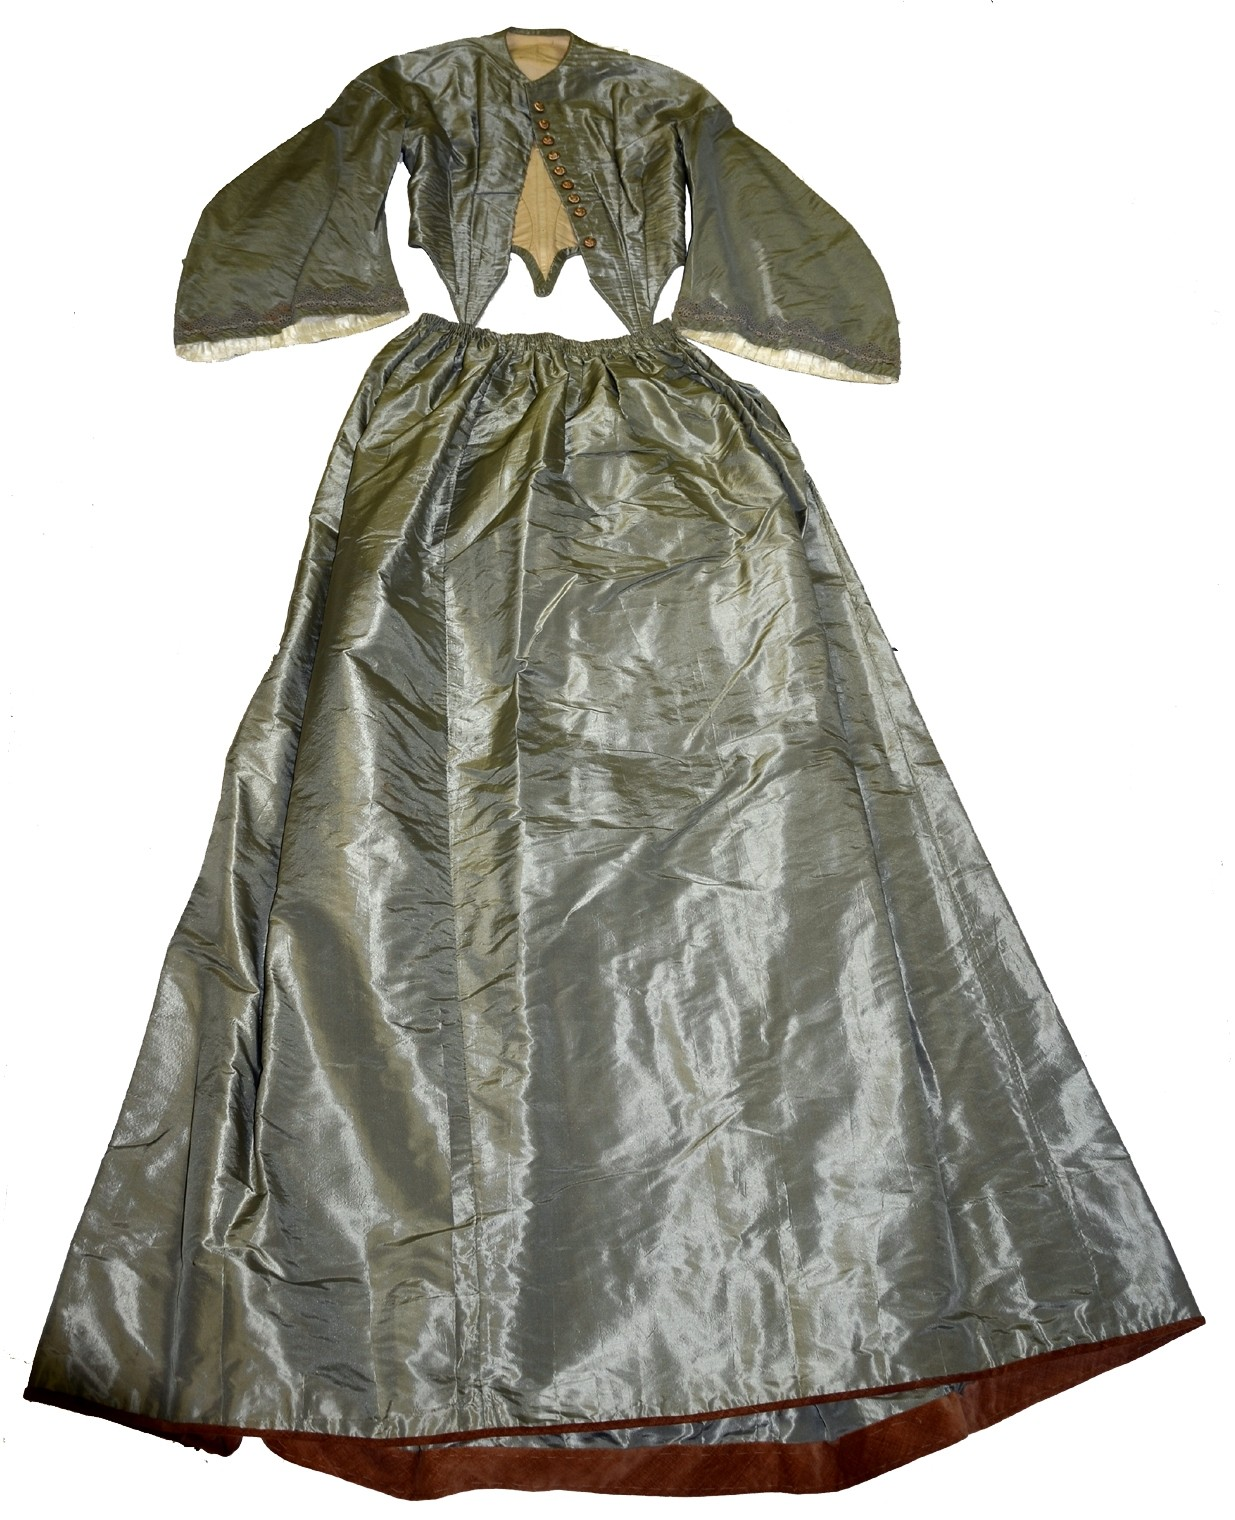 CELERY GREEN SILK TAFFETA BODICE AND SKIRT C. 1862-1864